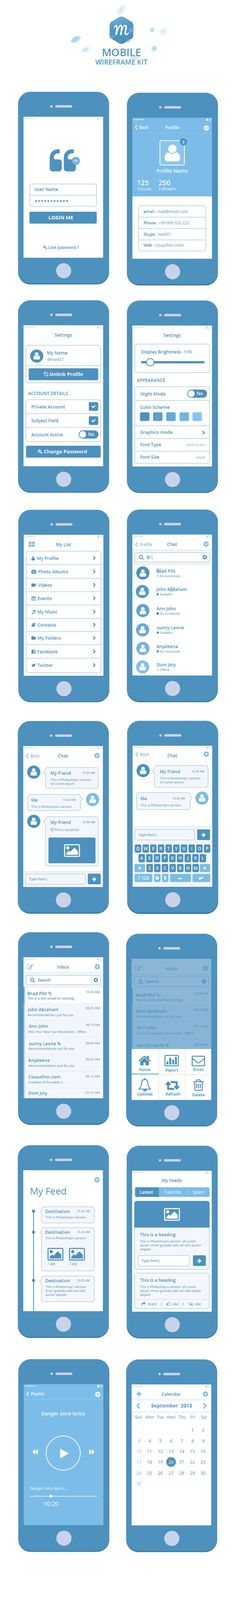 Free Wireframe Kit by prasad prechu, via Behance #mobile #app #wireframe